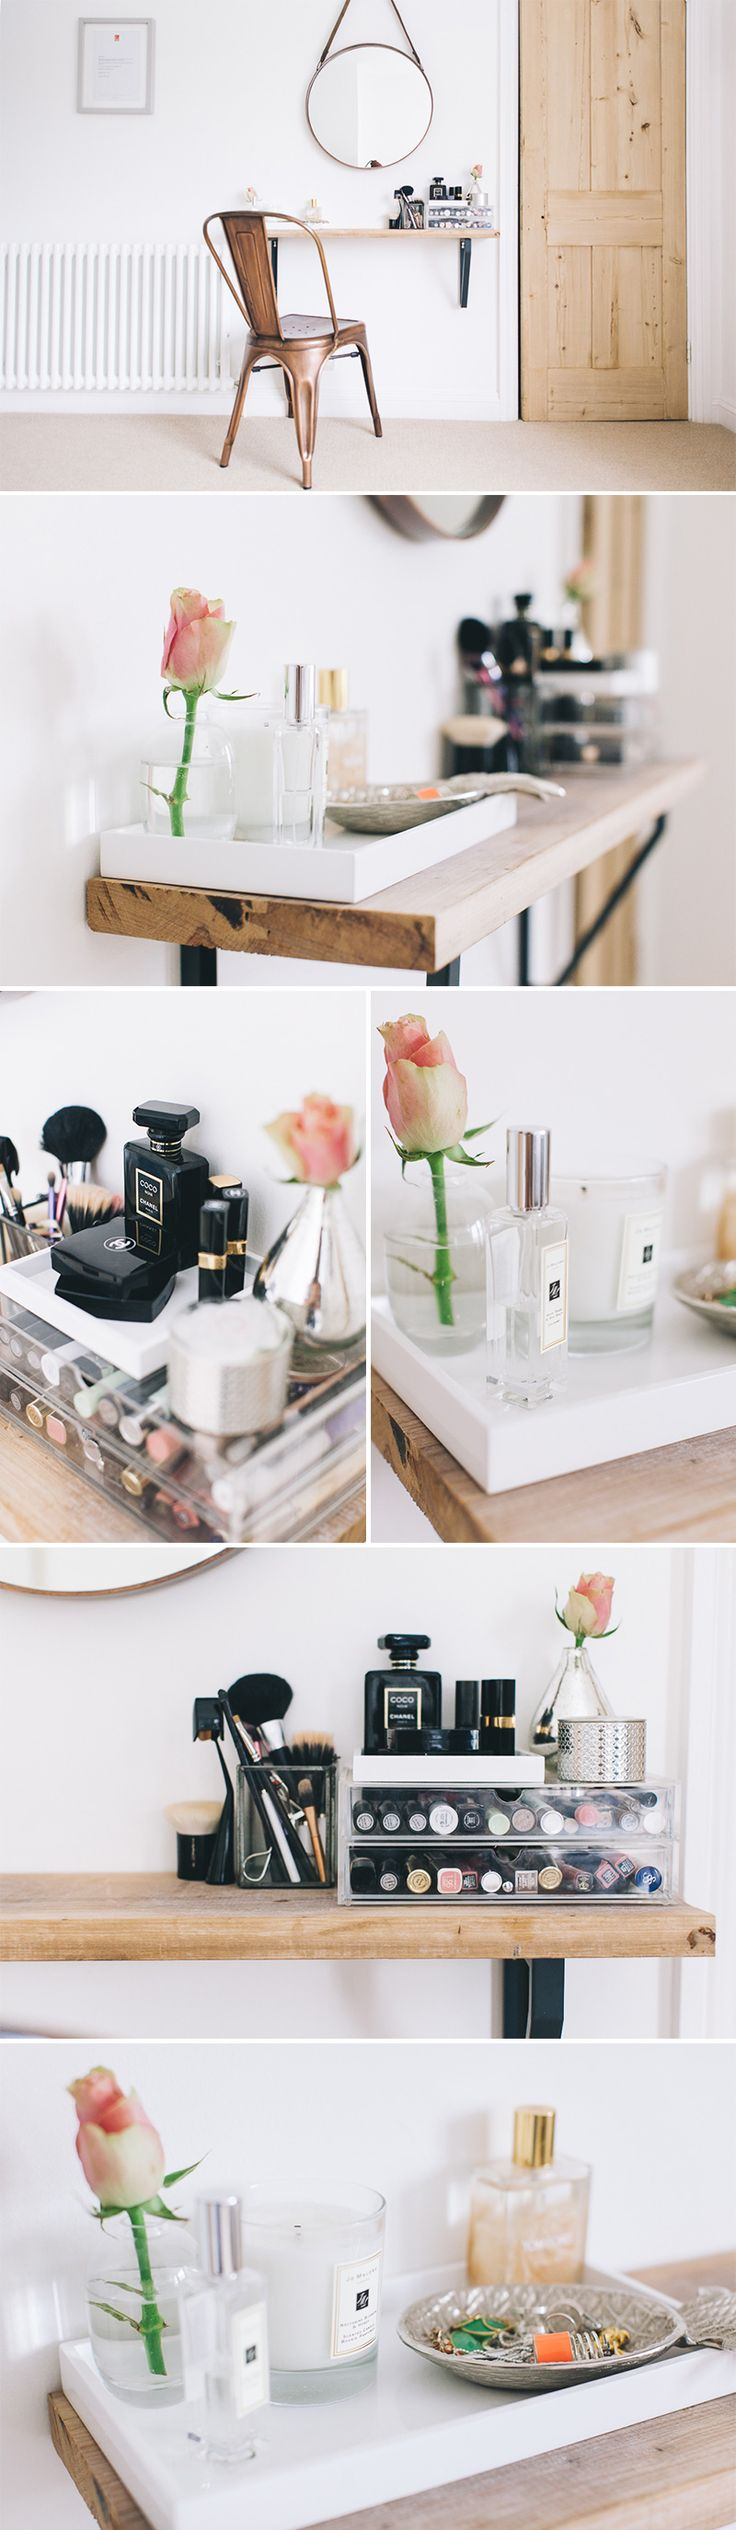 Small space beauty station | Rustic shelf and industrial accents to store make-up and cosmetics.